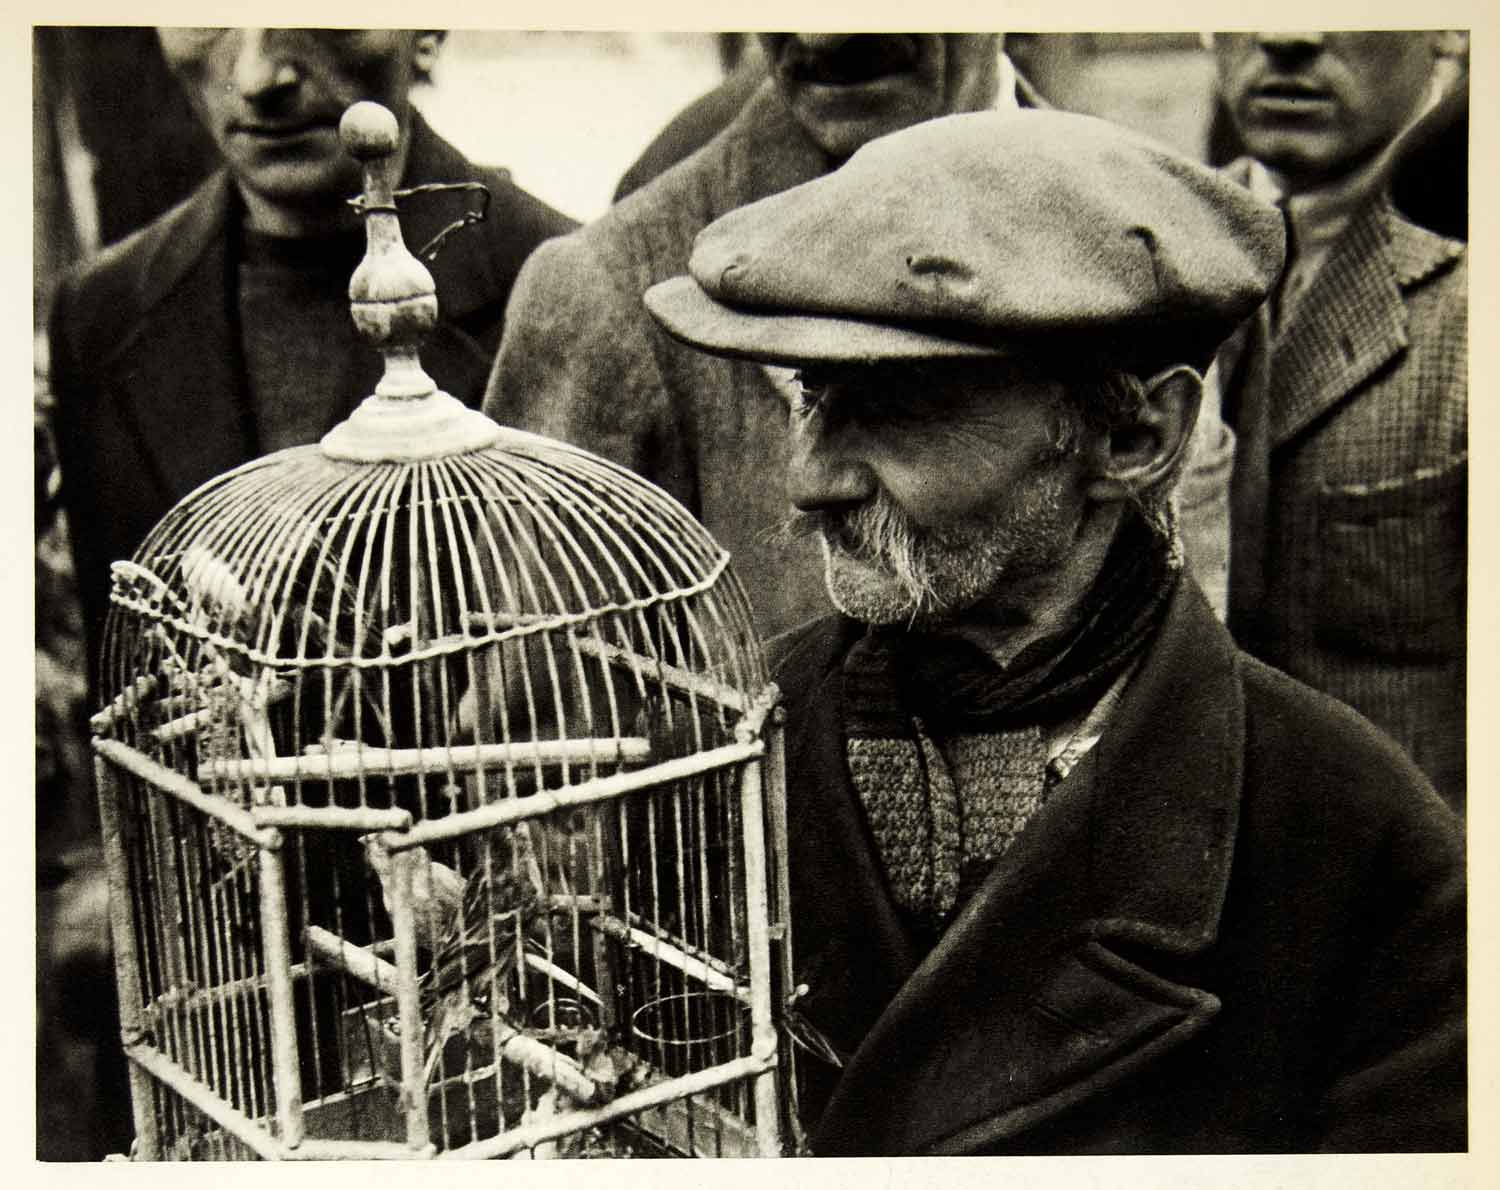 1954 Rotogravure Bird Market City Square Paris France Cage Barter Roth XGRC1